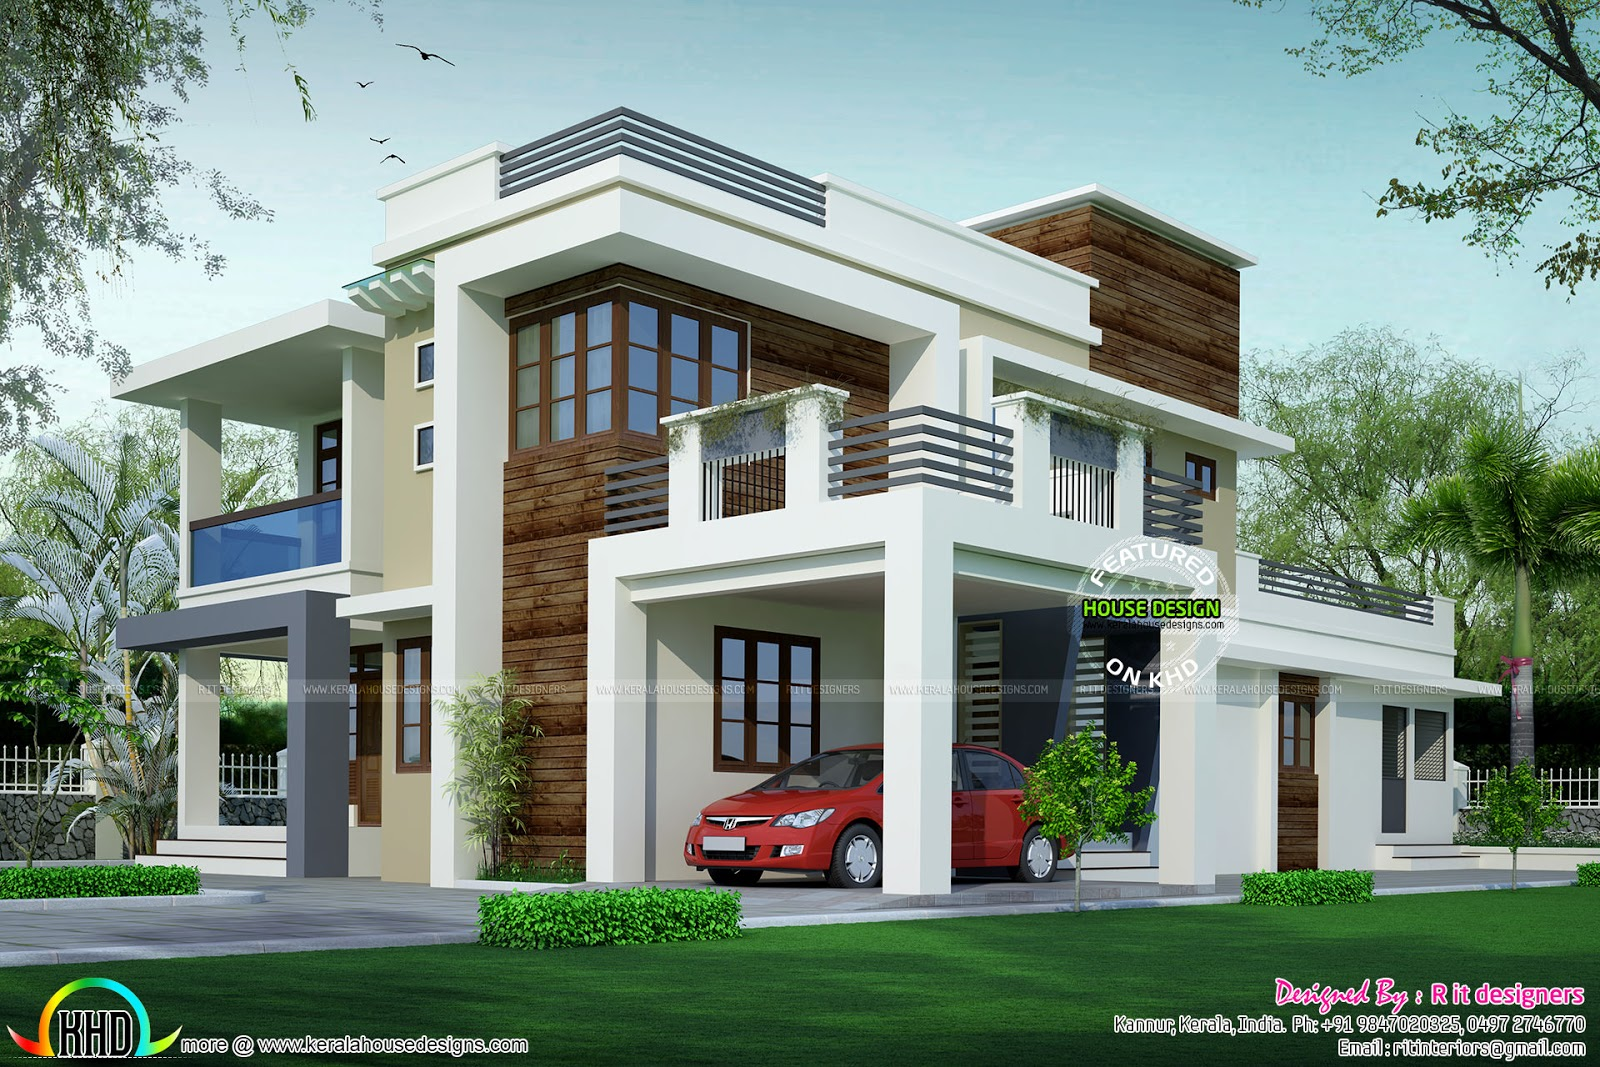 House design contemporary model kerala home design and for Home designs 2015